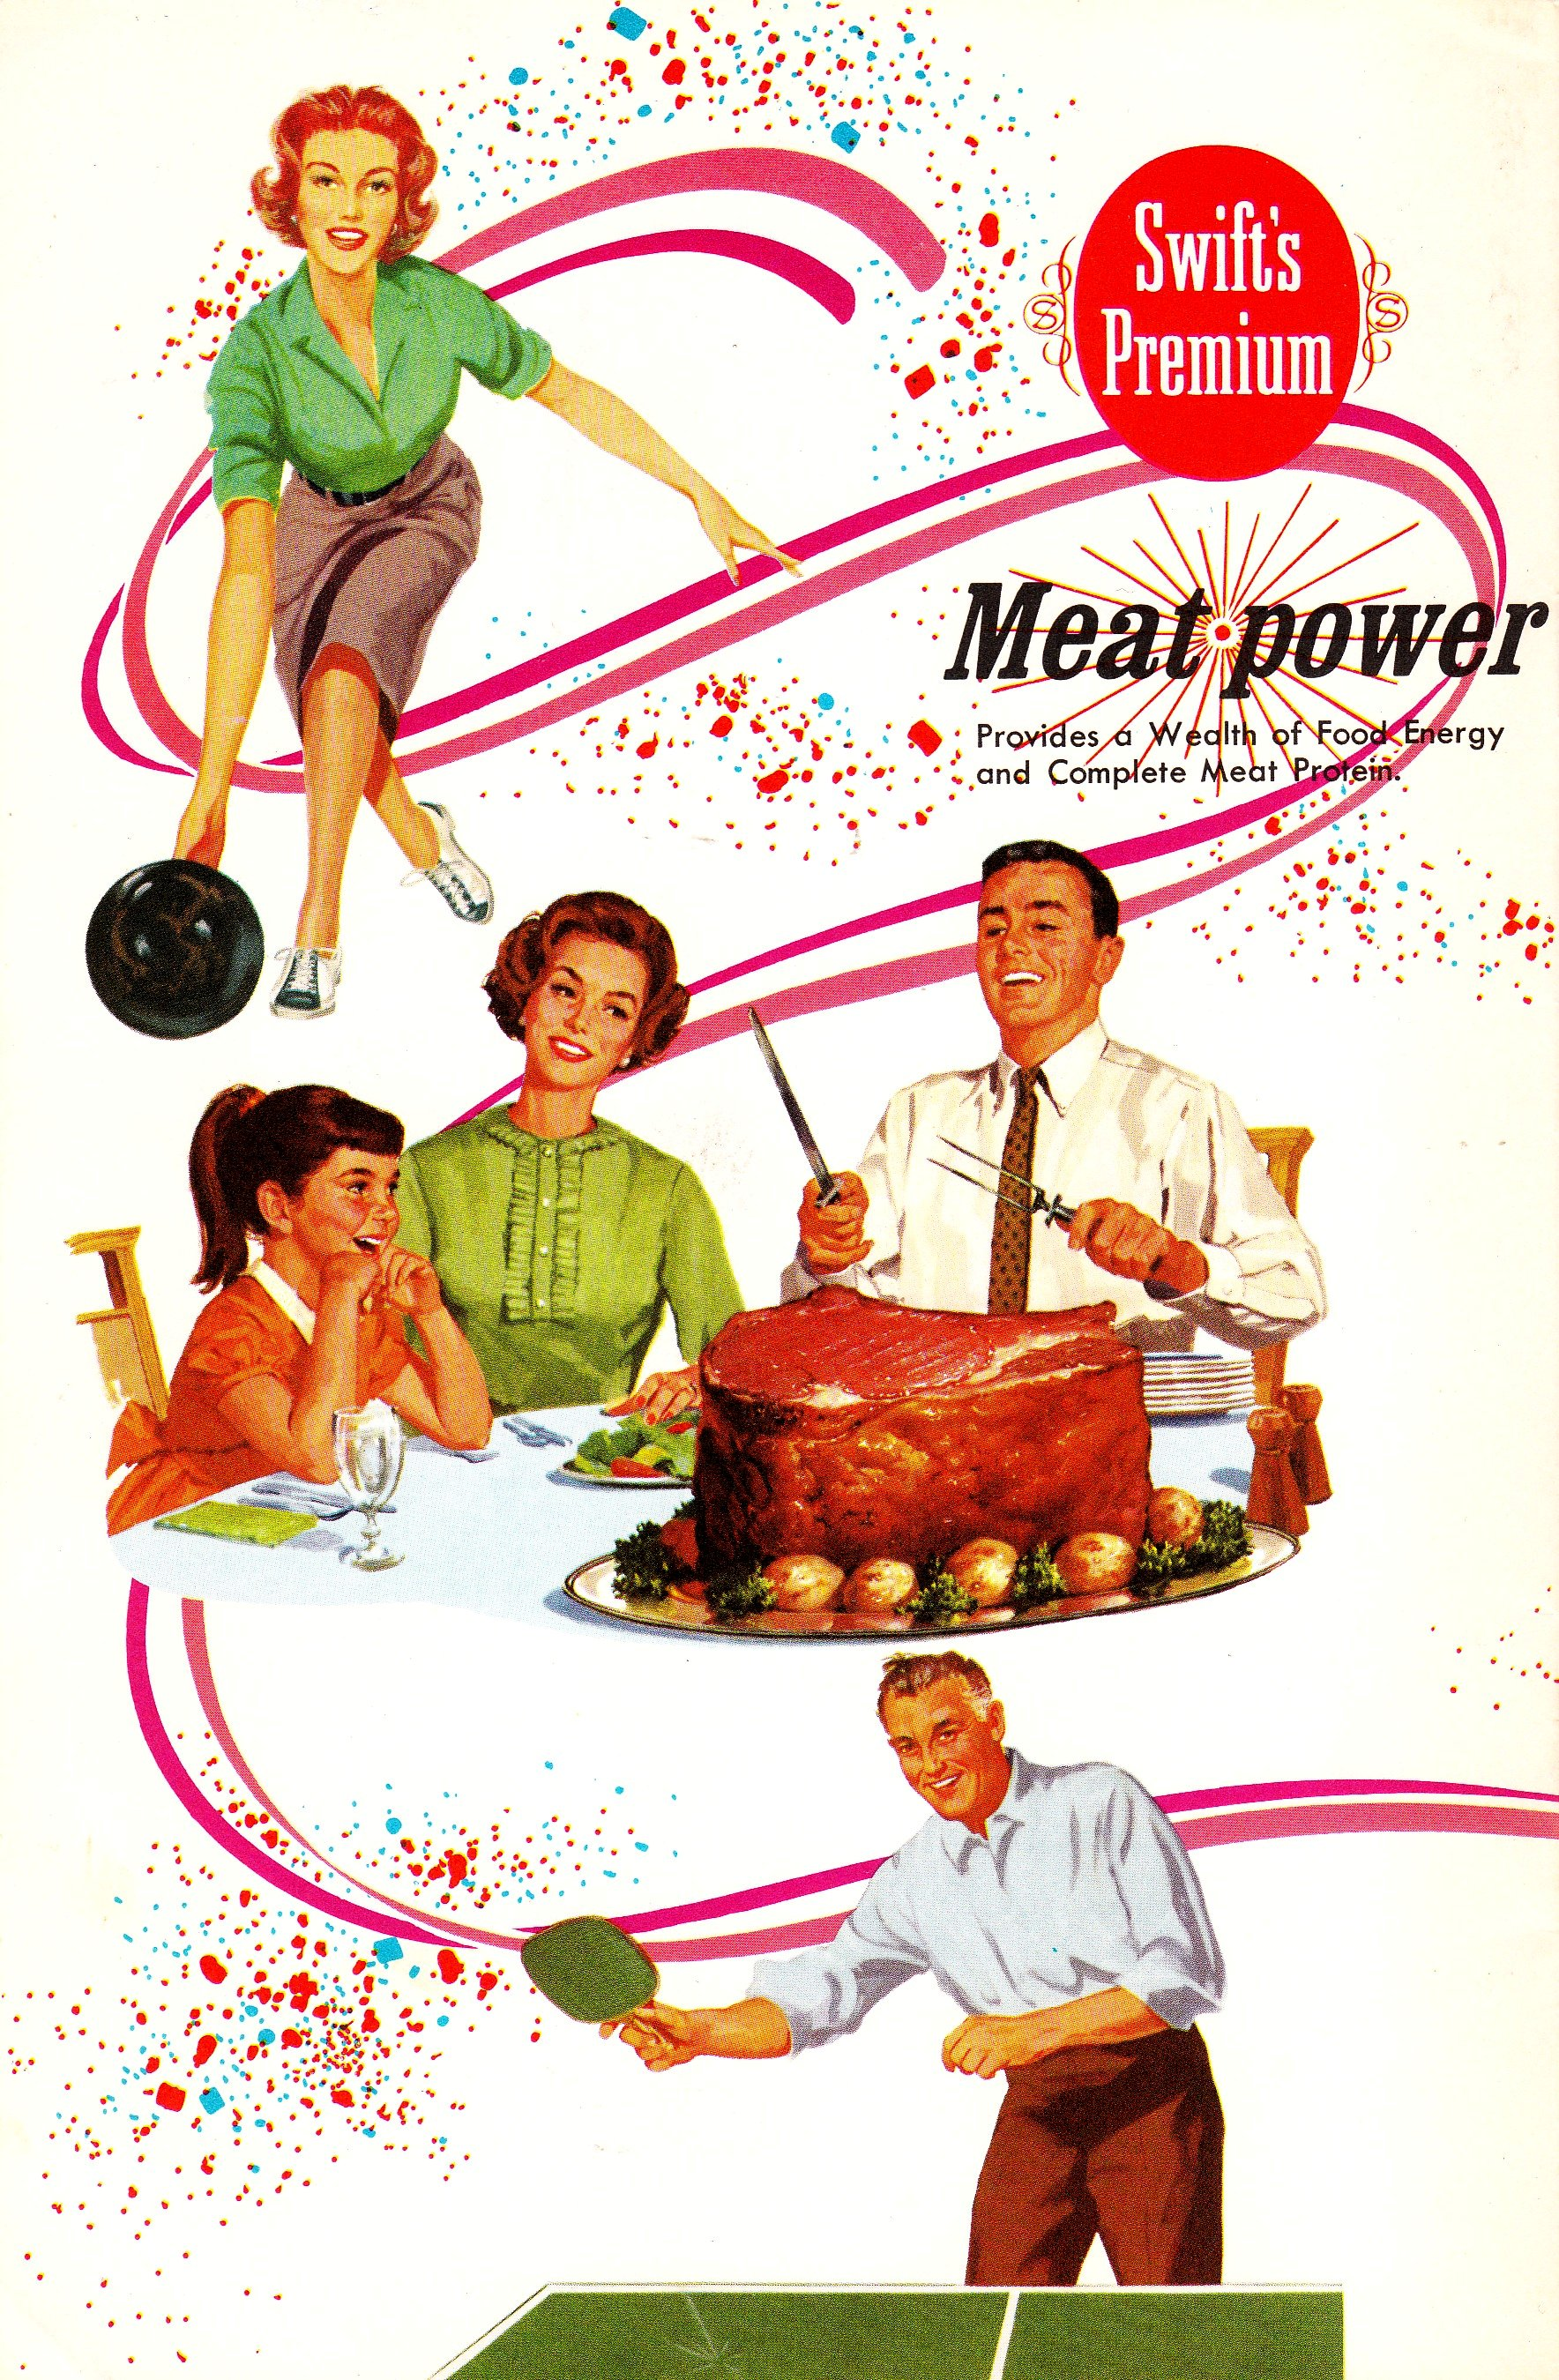 Swift and Company - 'Party Plans for Food and Games' - 1966 - Author: Martha Logan